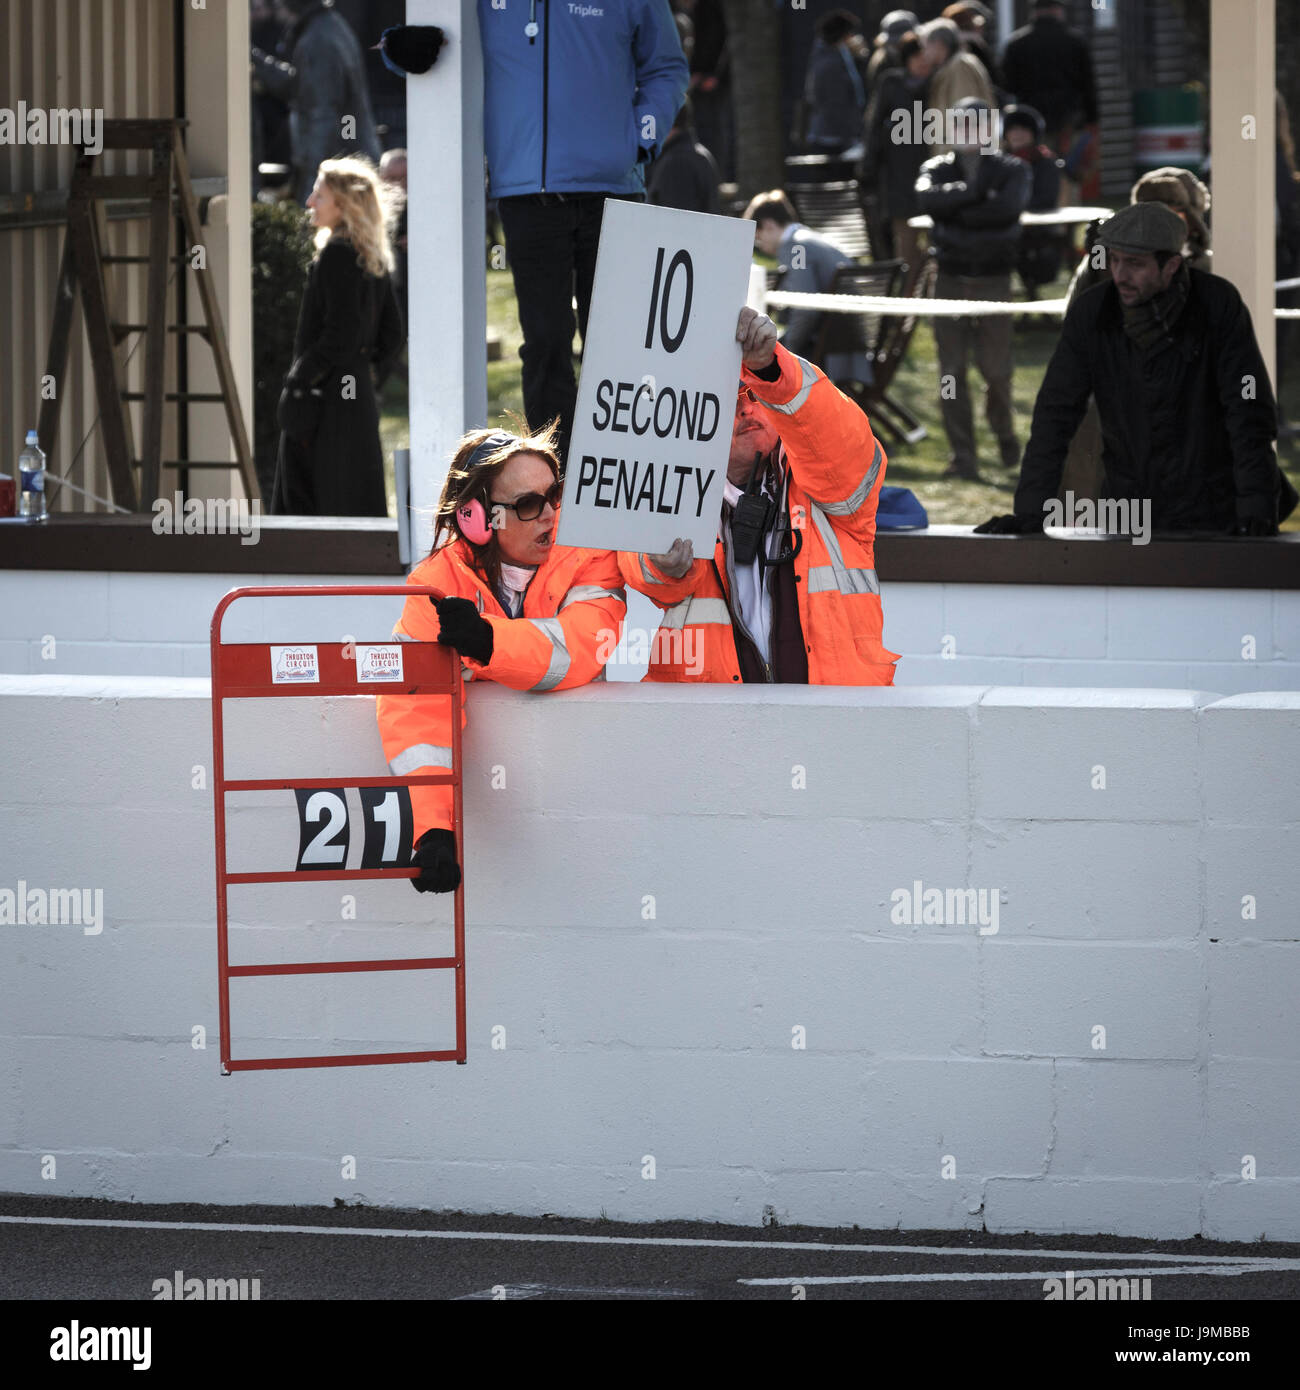 Race officials holding out the 10 Second Penalty board for car number 21 during the Gerry Marshall Trophy race at - Stock Image